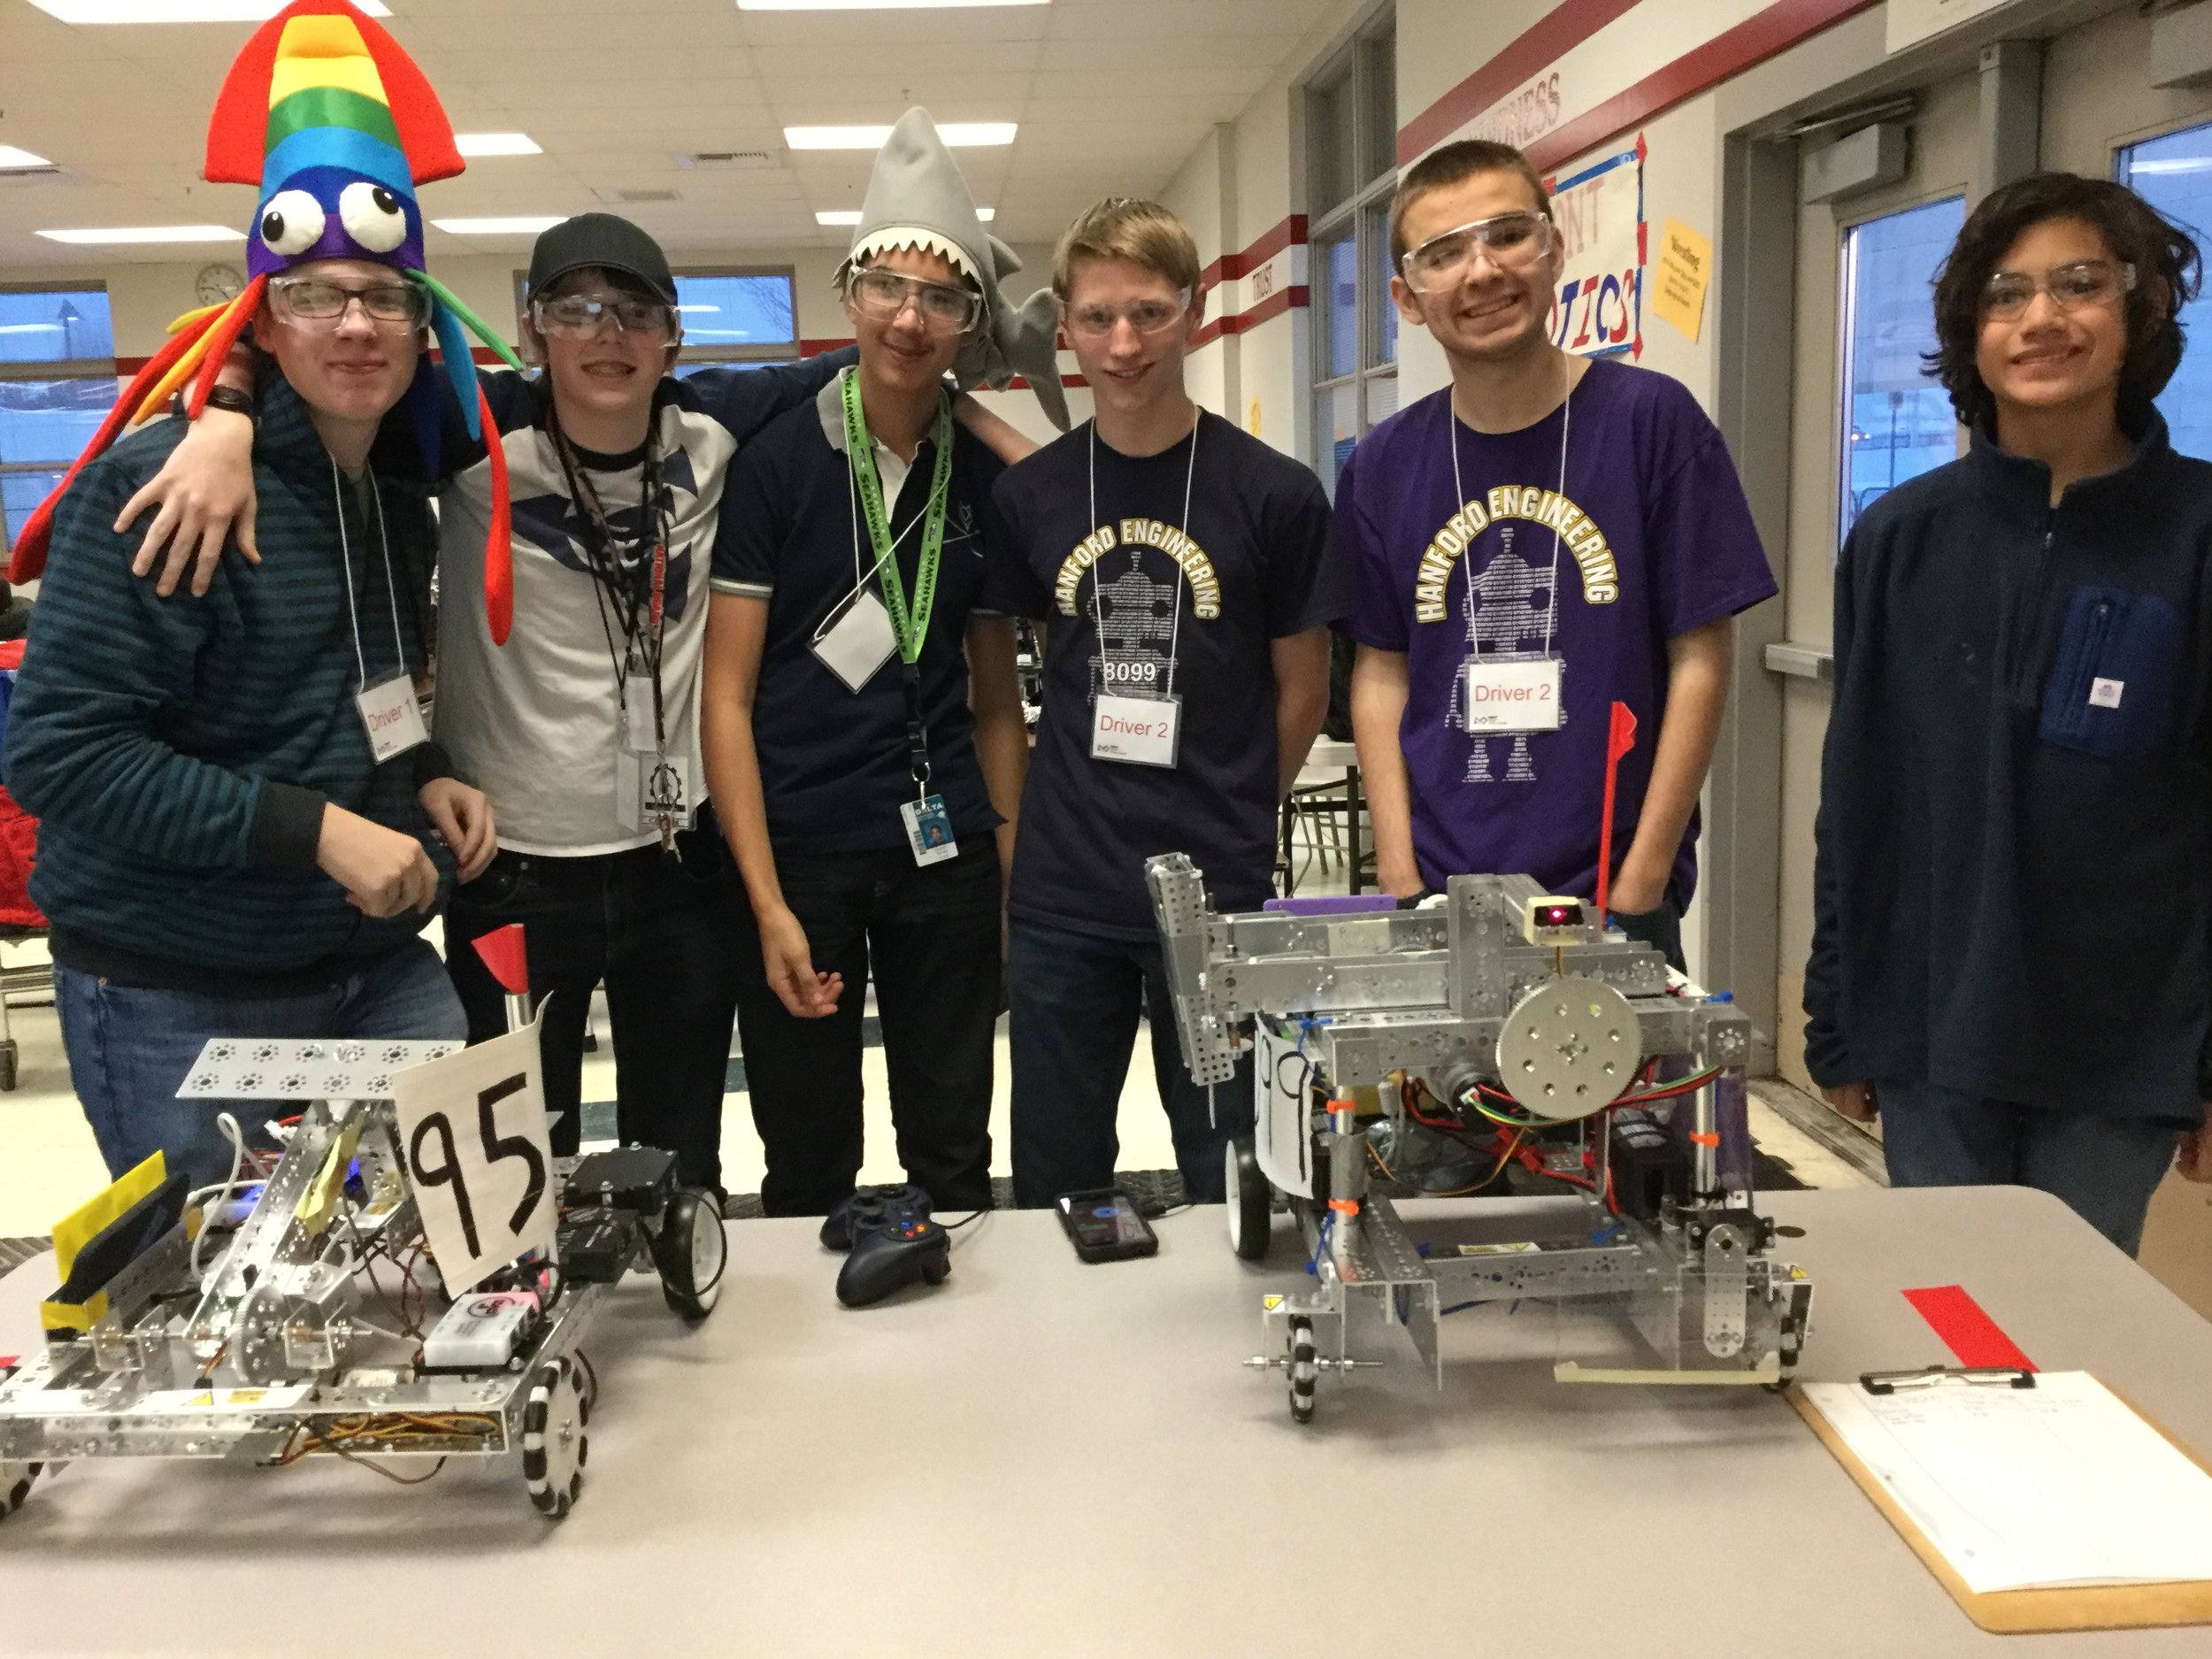 Congrats to the 16-17 Delta Robotics team - on to State!